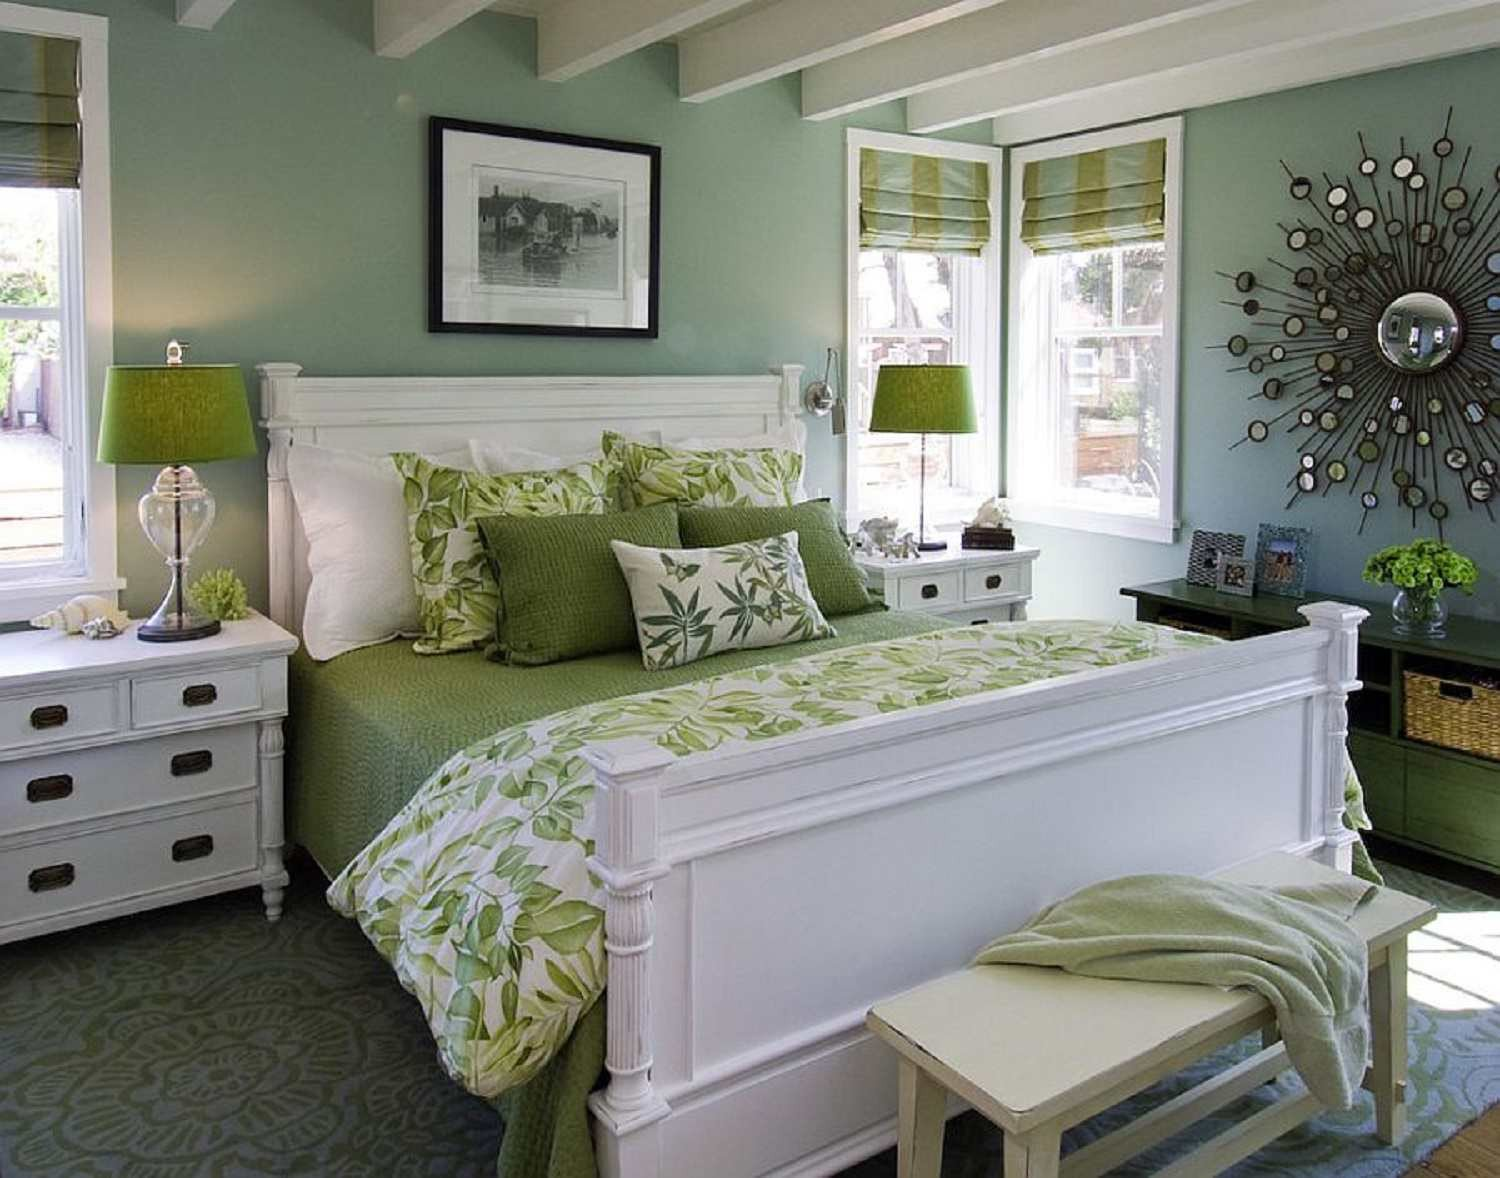 12x12 Bedroom Furniture Layout Inspirational Small Master Bedroom Design Ideas Tips and S